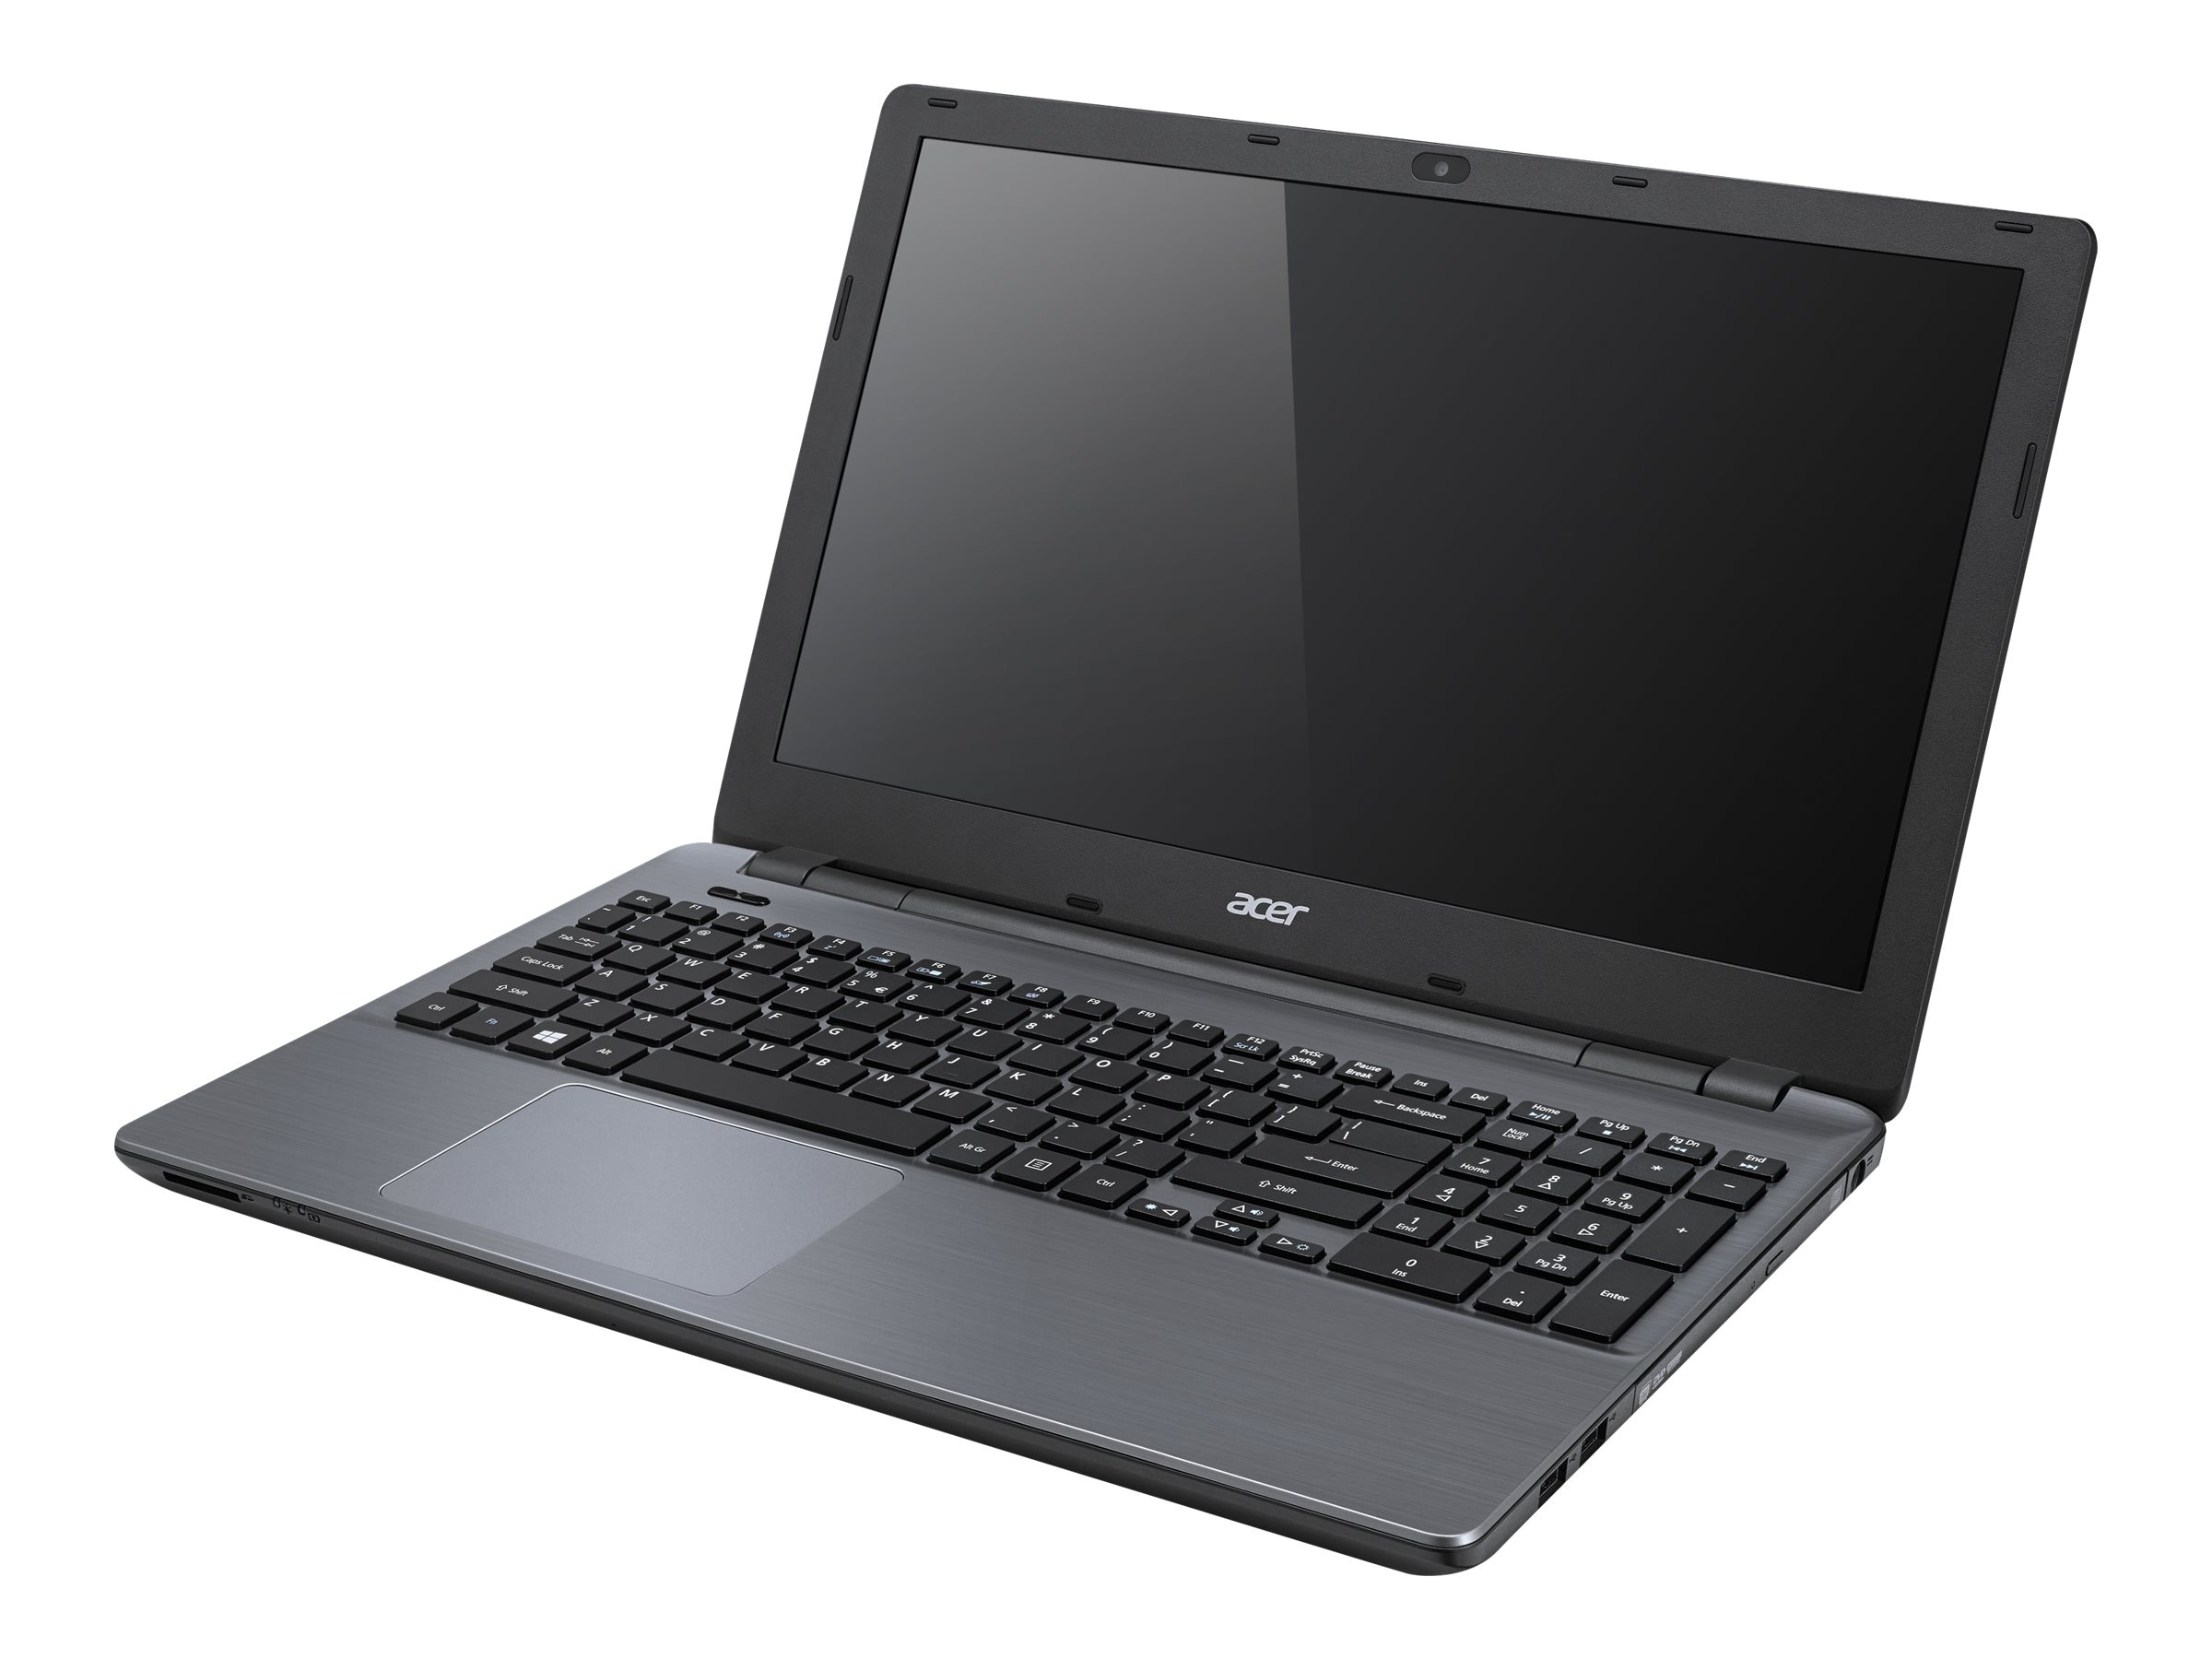 Acer Aspire E5-571-74F7 : 2.0GHz Core i7 15.6in display, NX.MLTAA.013, 17754036, Notebooks